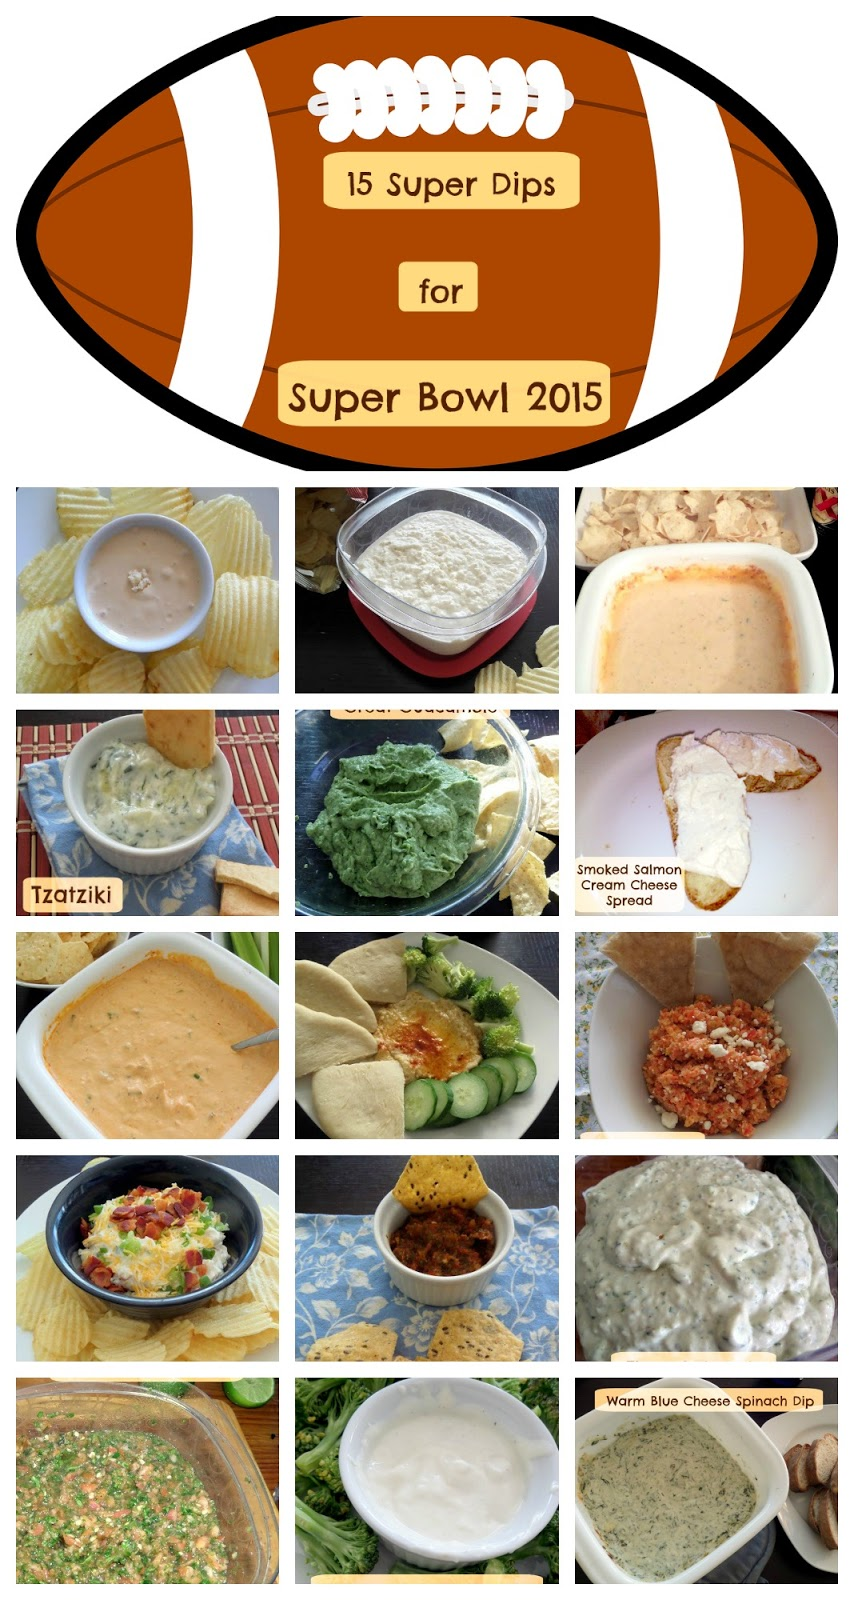 15 Super Dips for Super Bowl 2015:  A roundup of 15 dips, salsas, and spreads to make any Super Bowl party super.  I sure love dips.